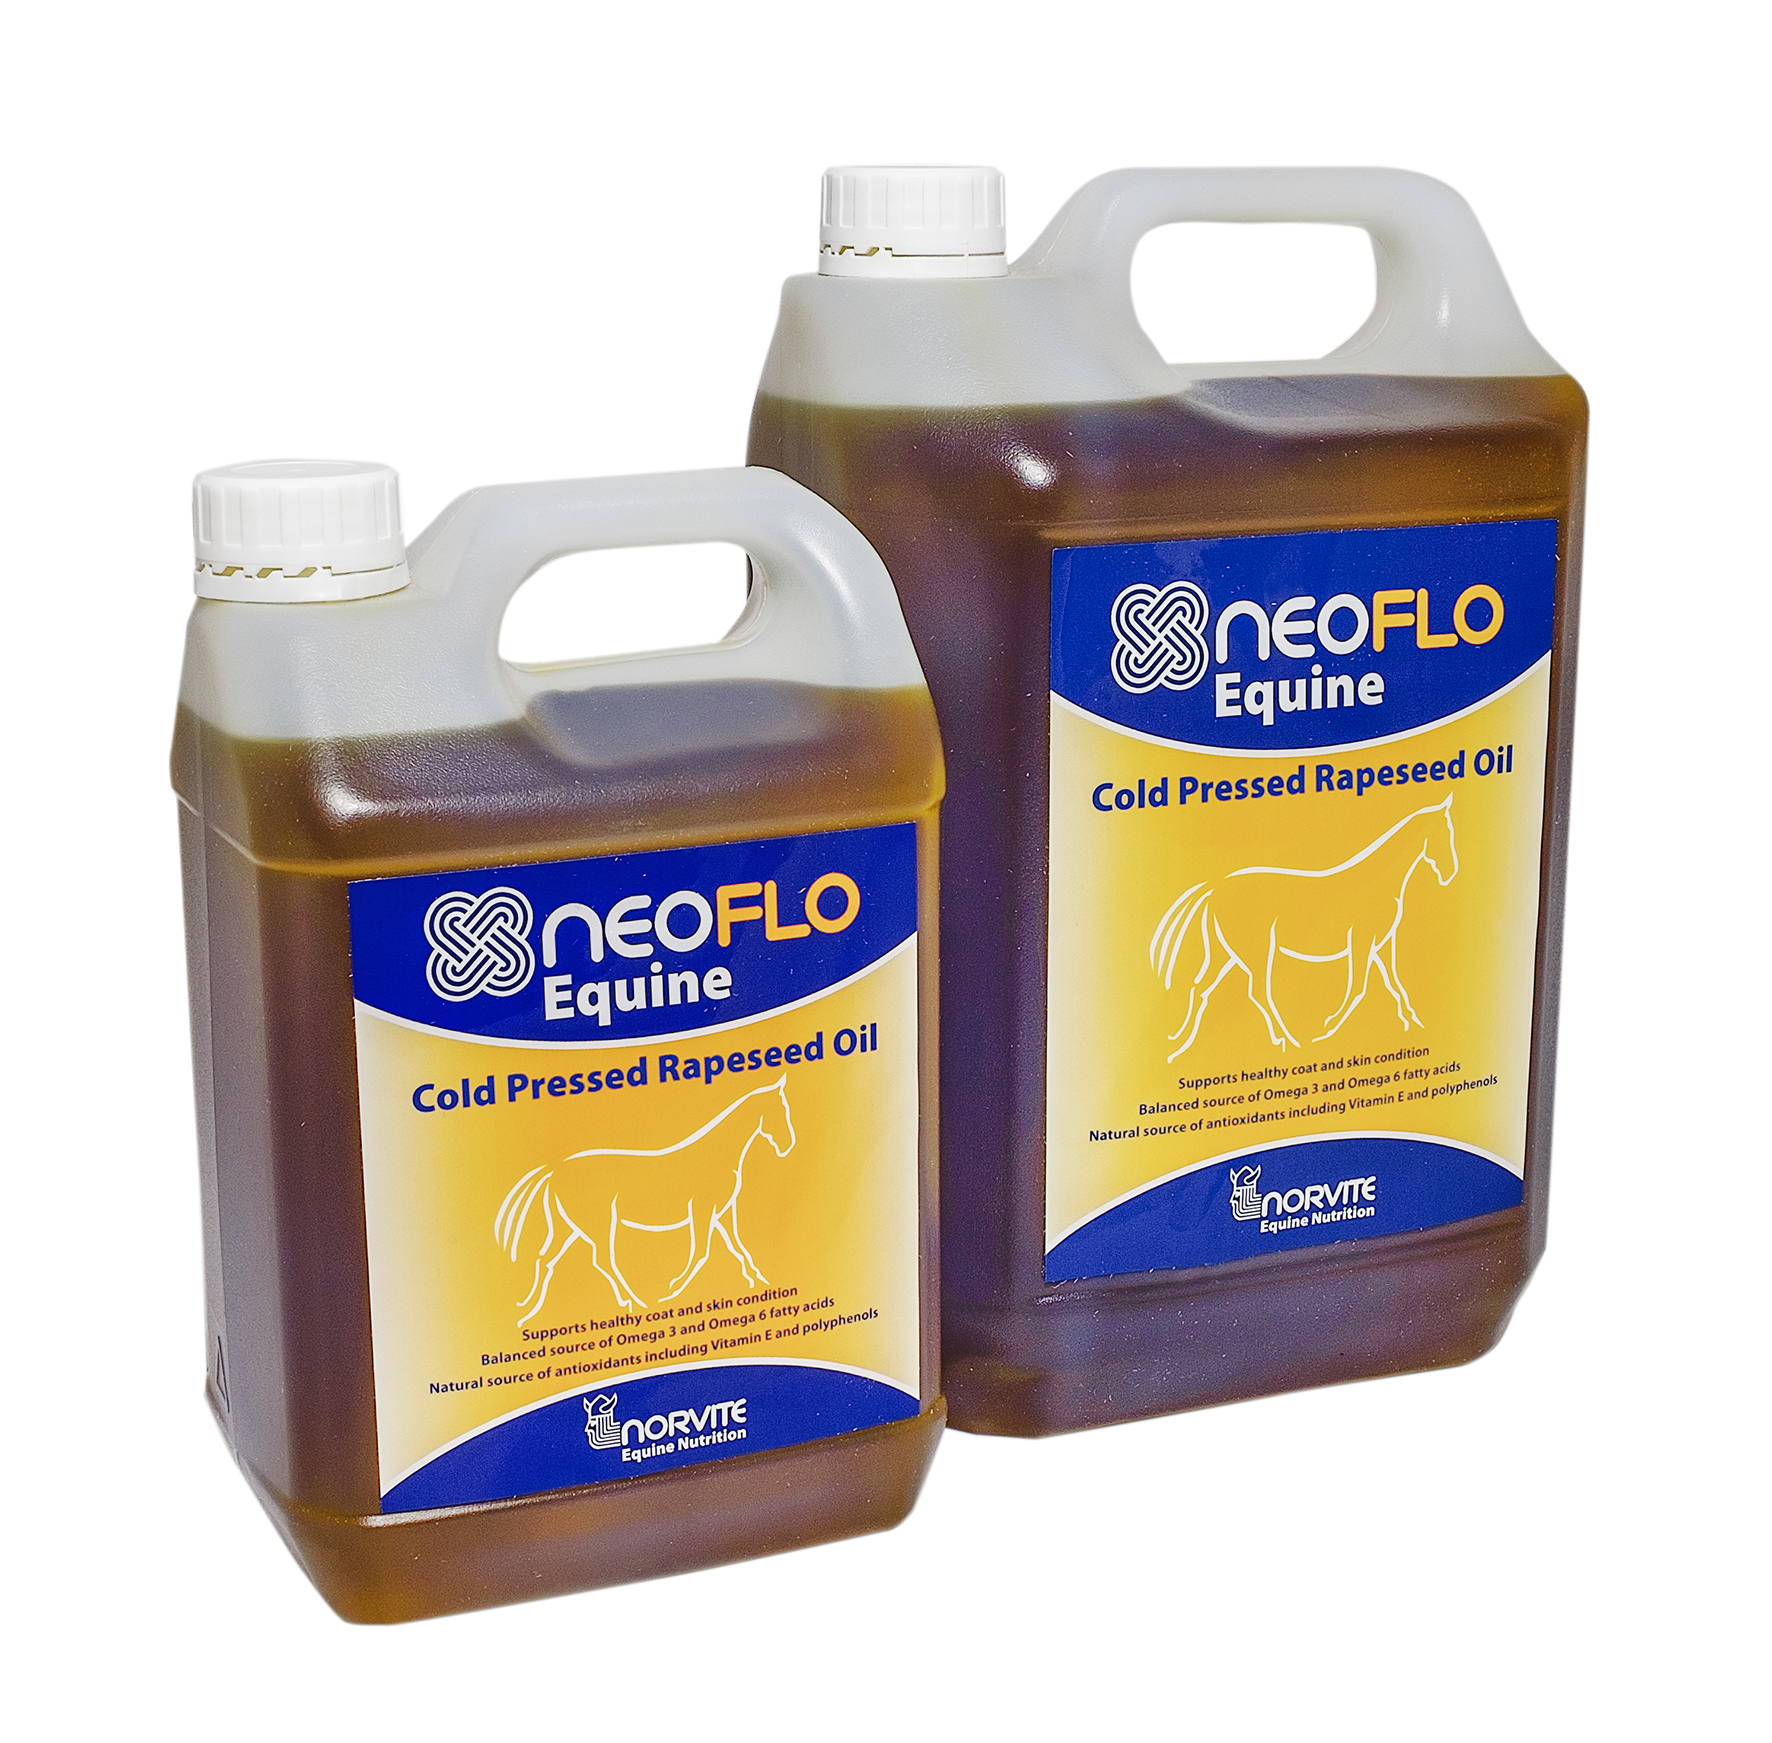 Neoflo Equine Tried and Tested